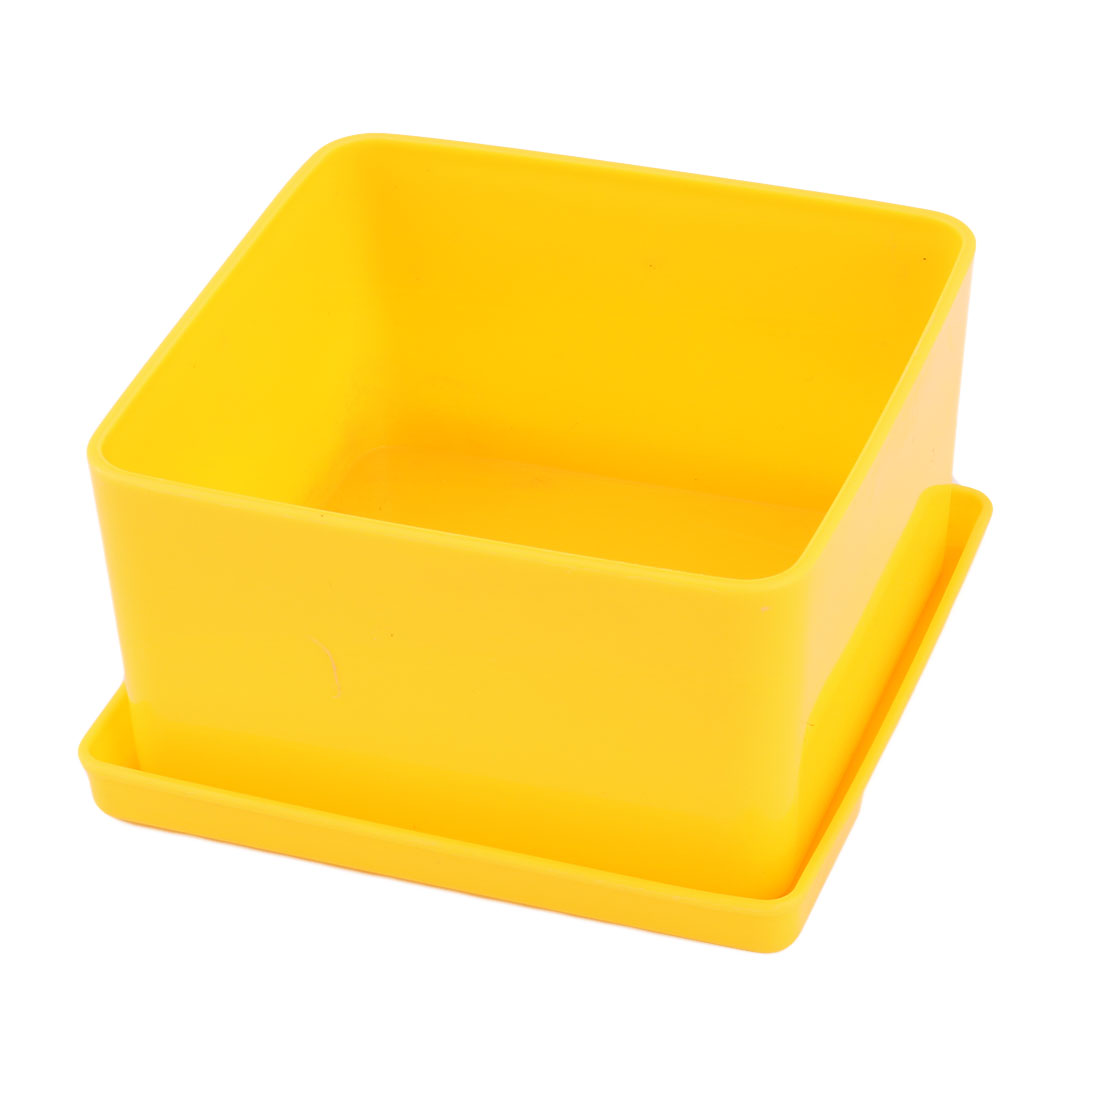 Home Desktop Decor Plastic Flower Grass Plant Pot Tray Holder Container Yellow